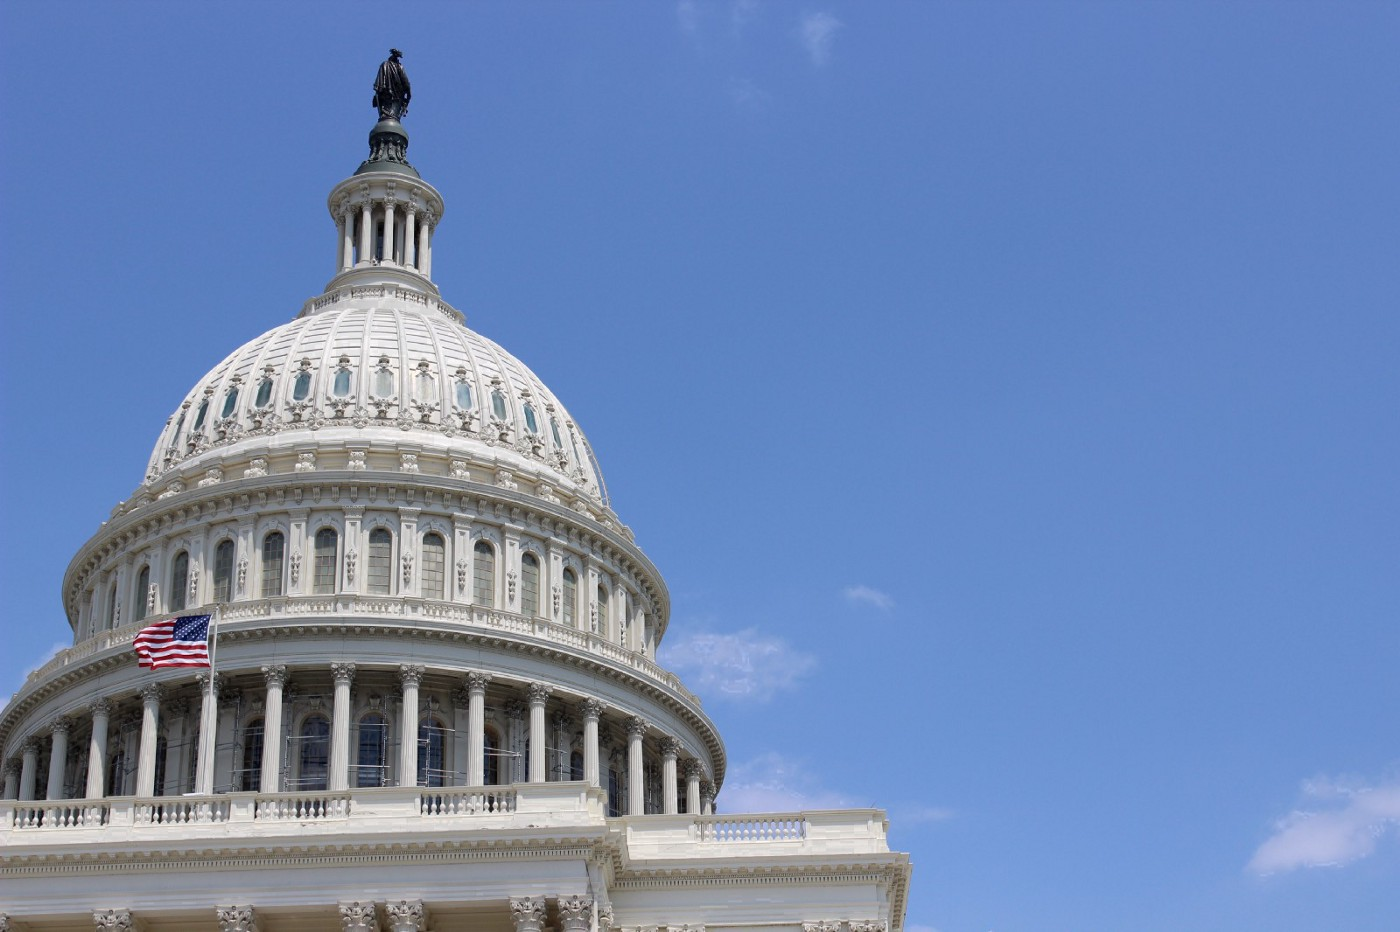 An image of the dome of the United States Capitol. Photo credit: Jessica M. Castillo, 2014.